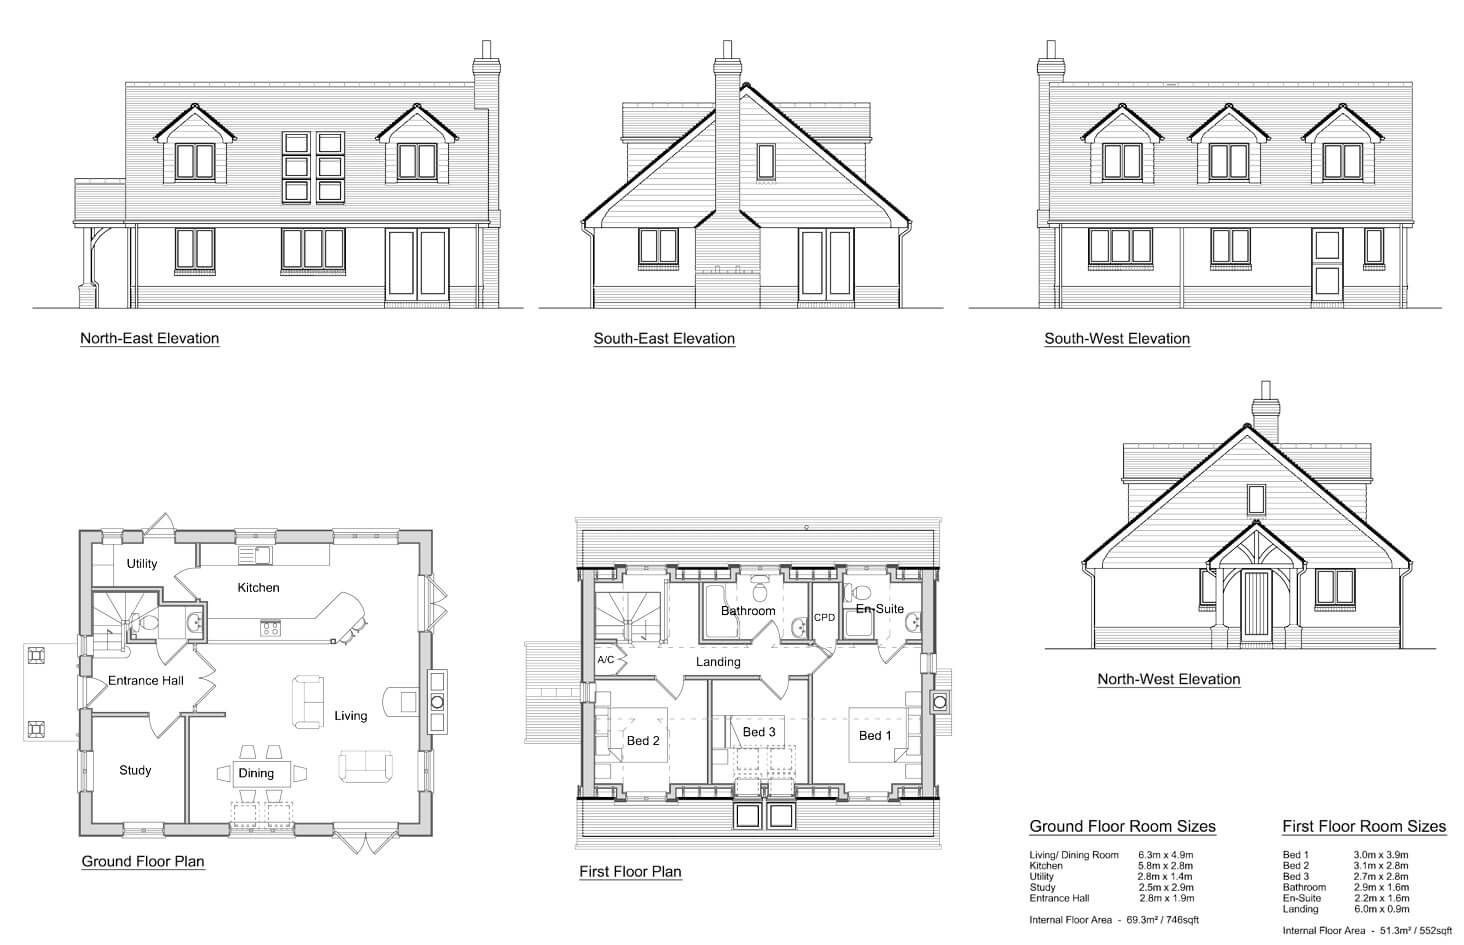 5 bedroom house designs uk lansdowne 3 bedroom chalet for 5 bedroom house designs uk